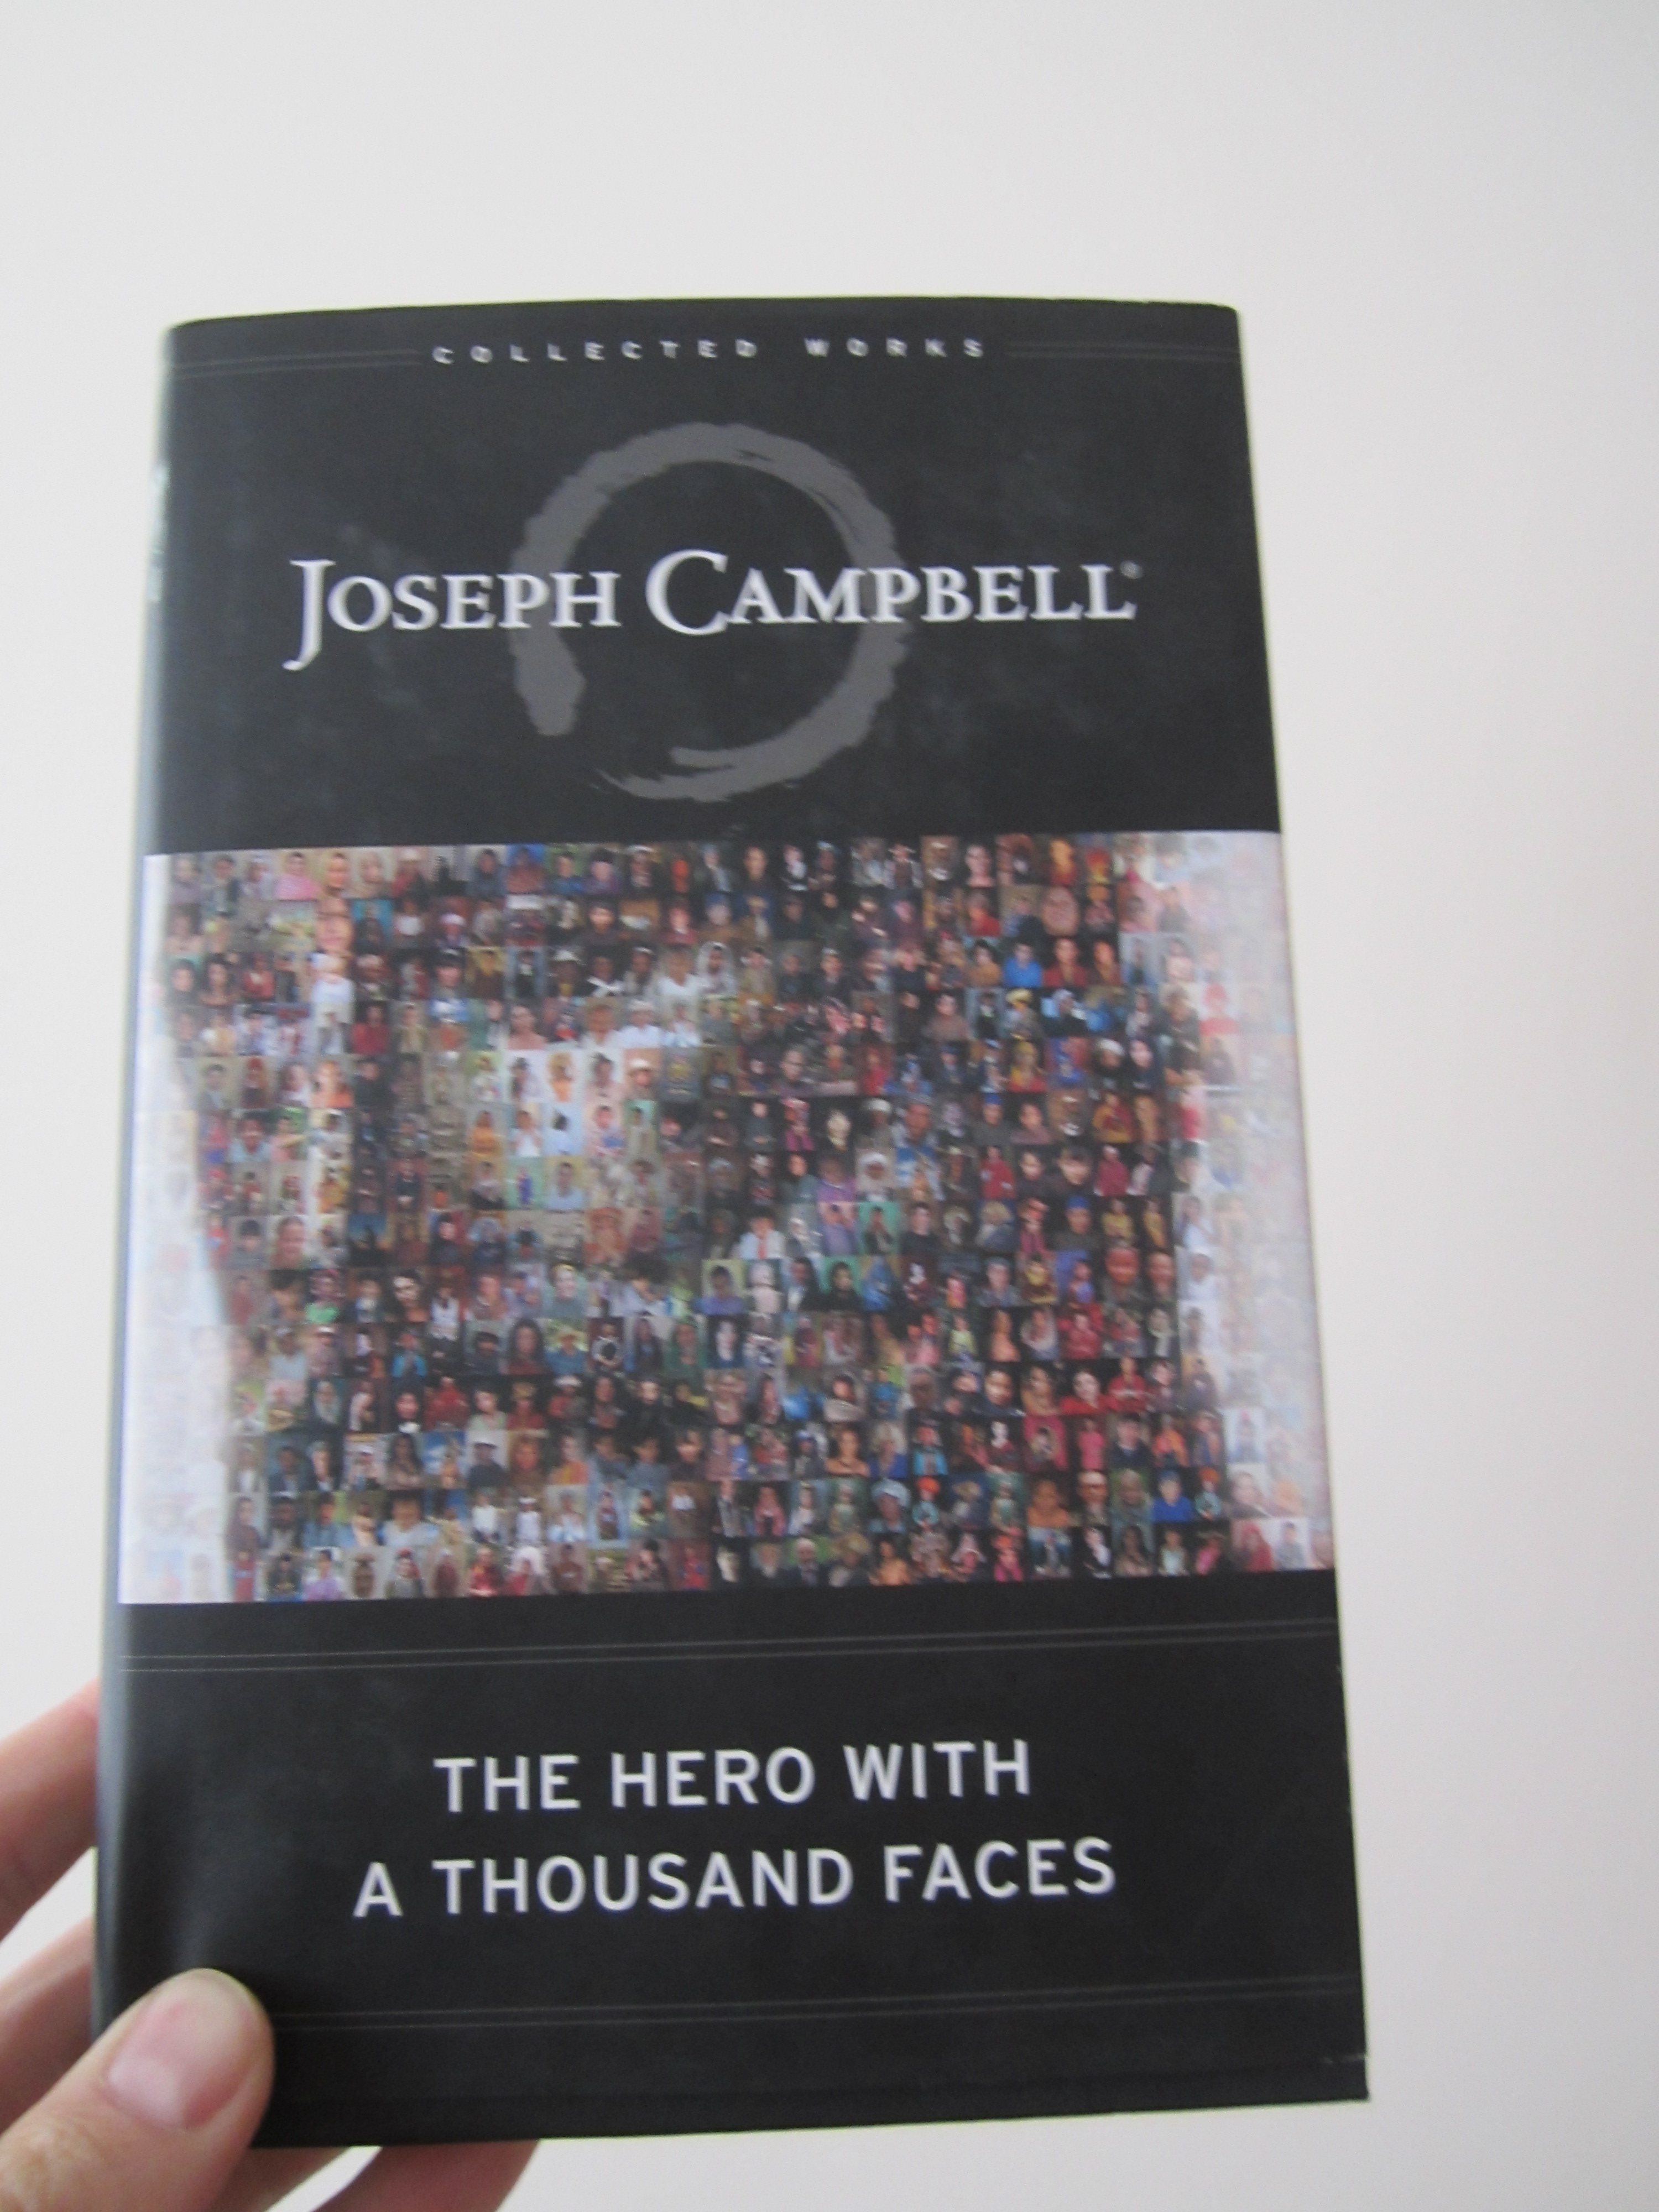 hero with a thousand faces and Since its release in 1949,the hero with a thousand faces has influenced millions of readers by combining the insights of modern psychology with joseph campbell's revolutionary understanding of comparative mythology.